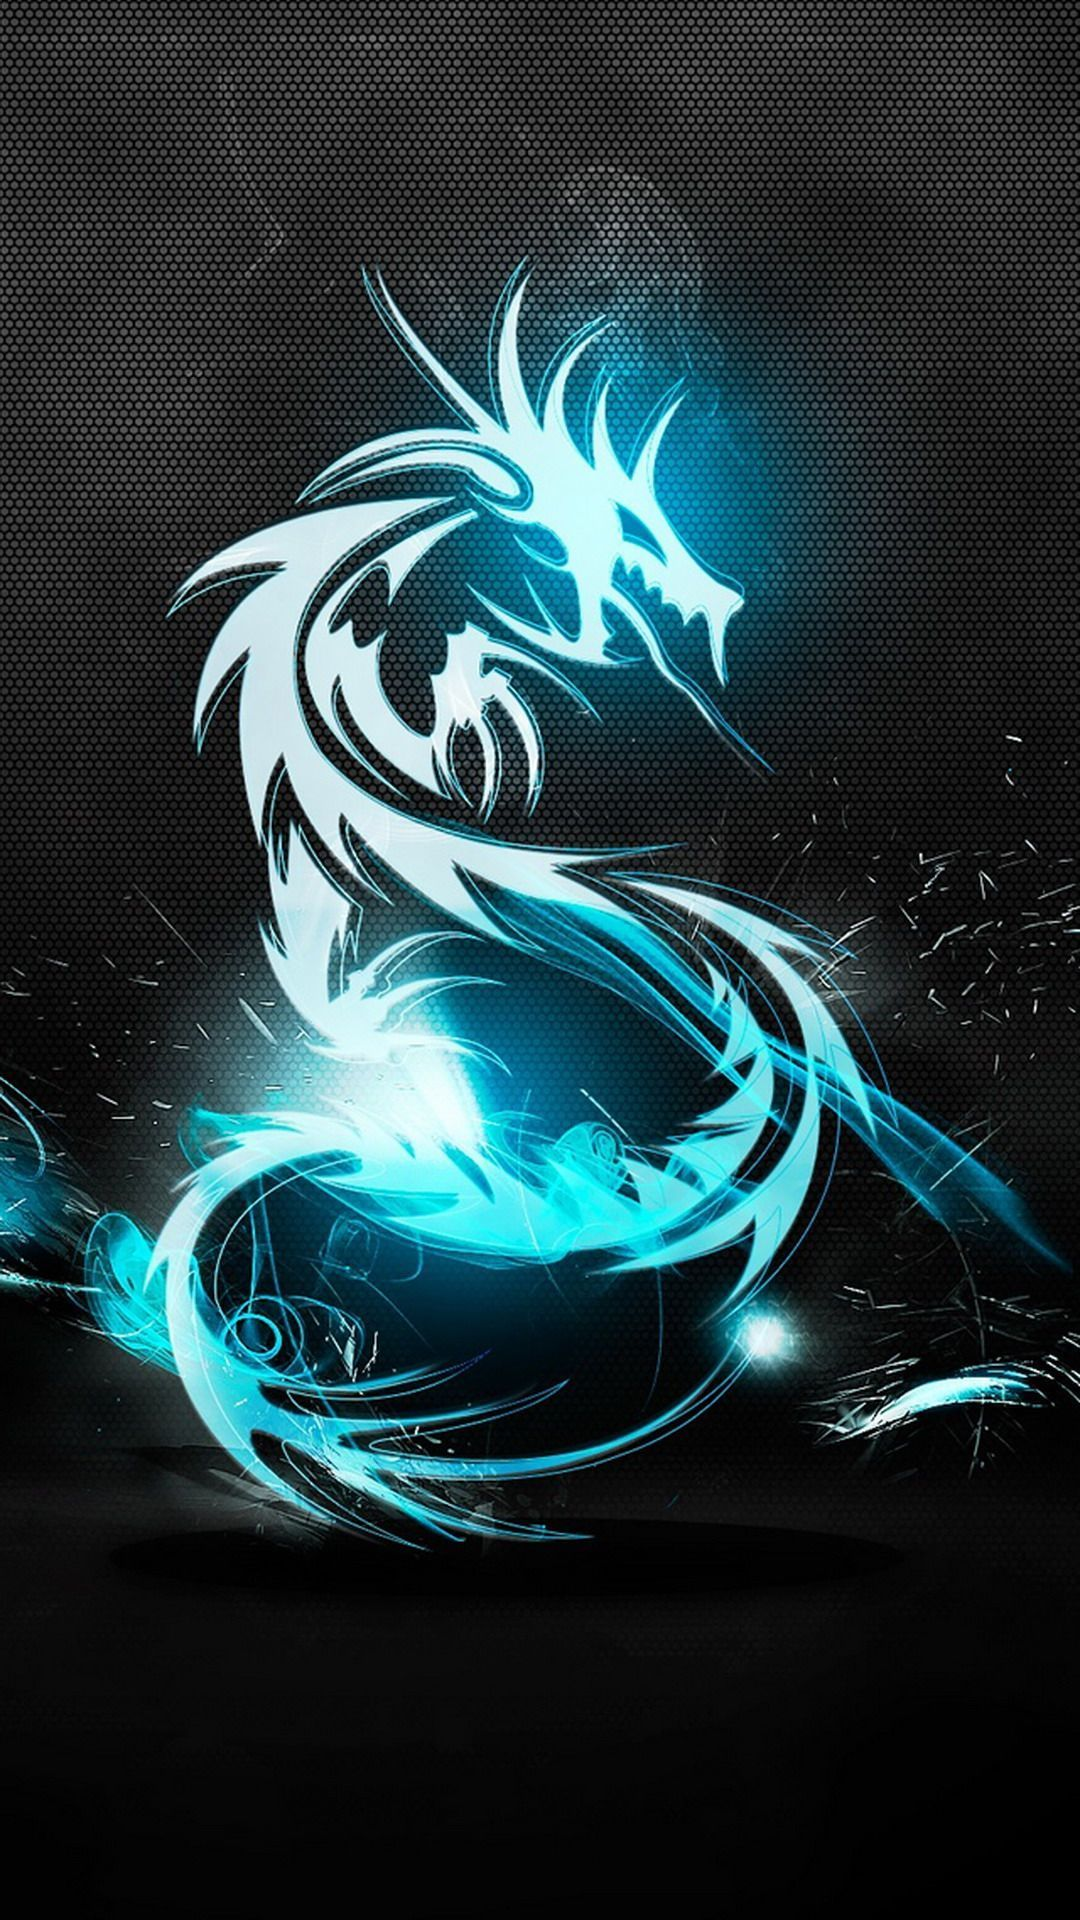 Cool Phone Wallpapers Top Free Cool Phone Backgrounds Wallpaperaccess In 2020 Cool Wallpapers For Phones Dragon Pictures Cool Desktop Backgrounds